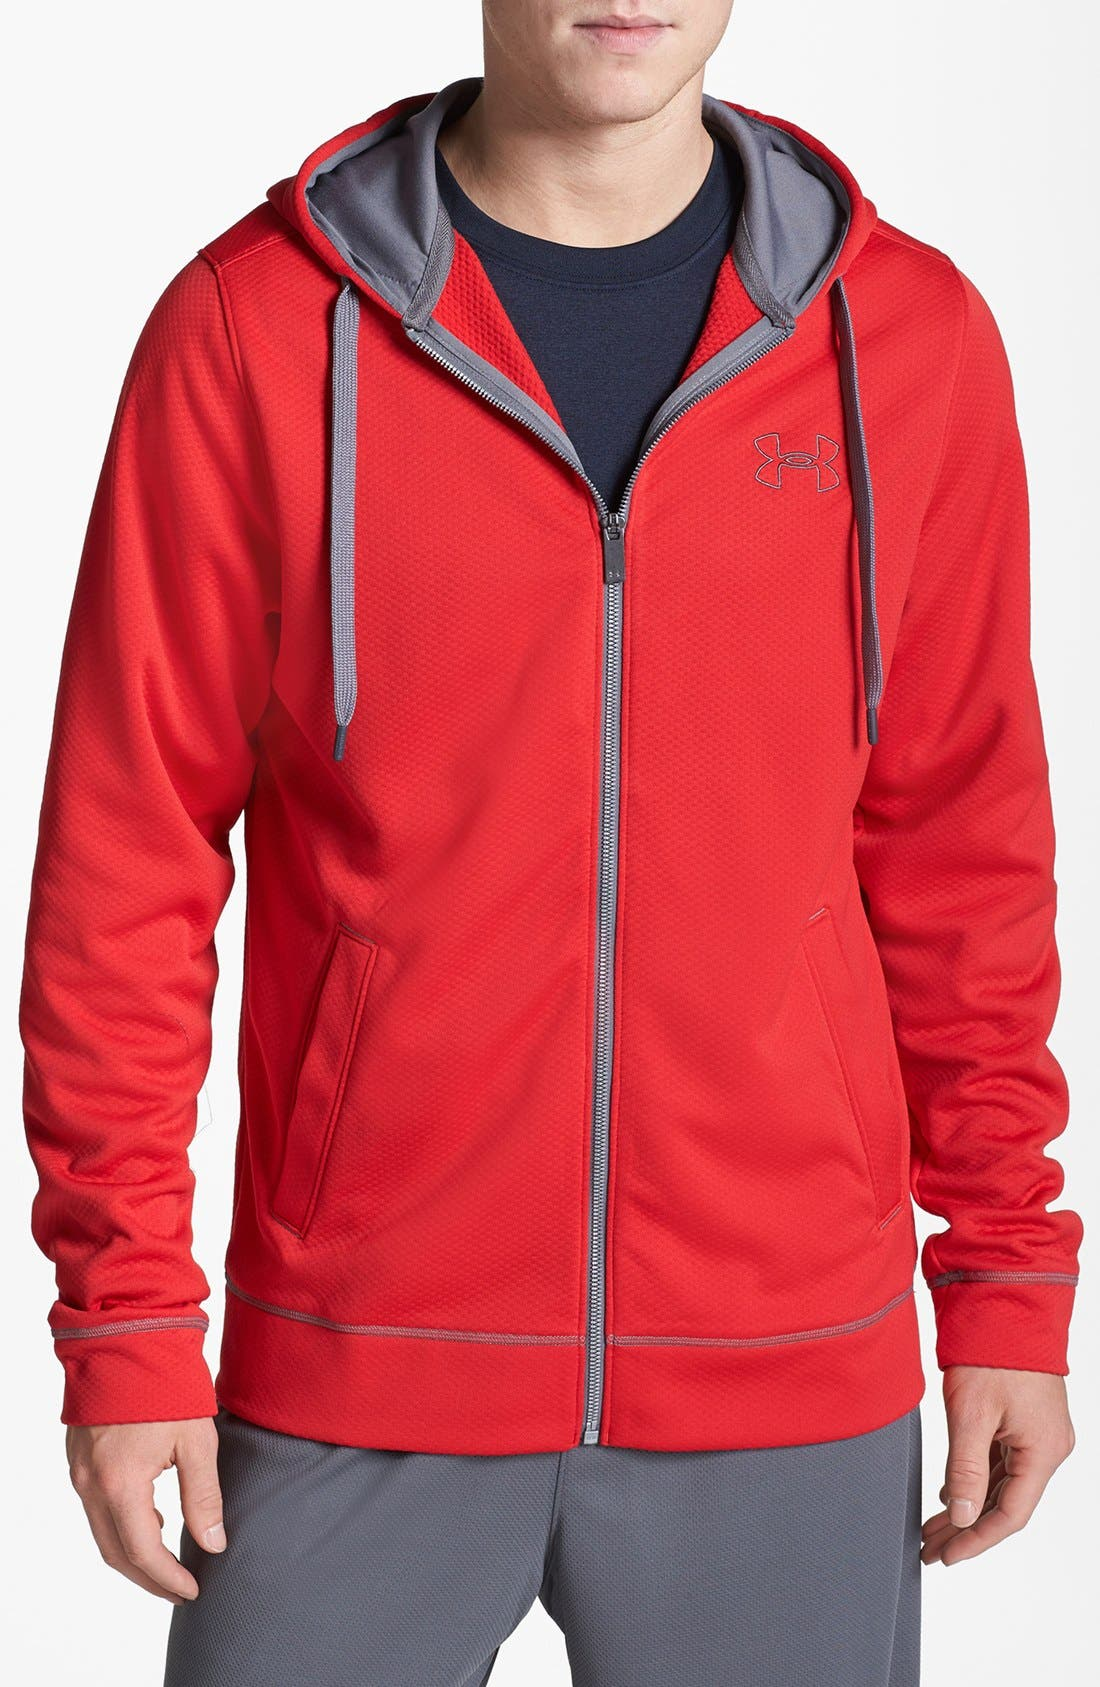 Main Image - Under Armour 'Tech' Loose Fit Fleece Hoodie